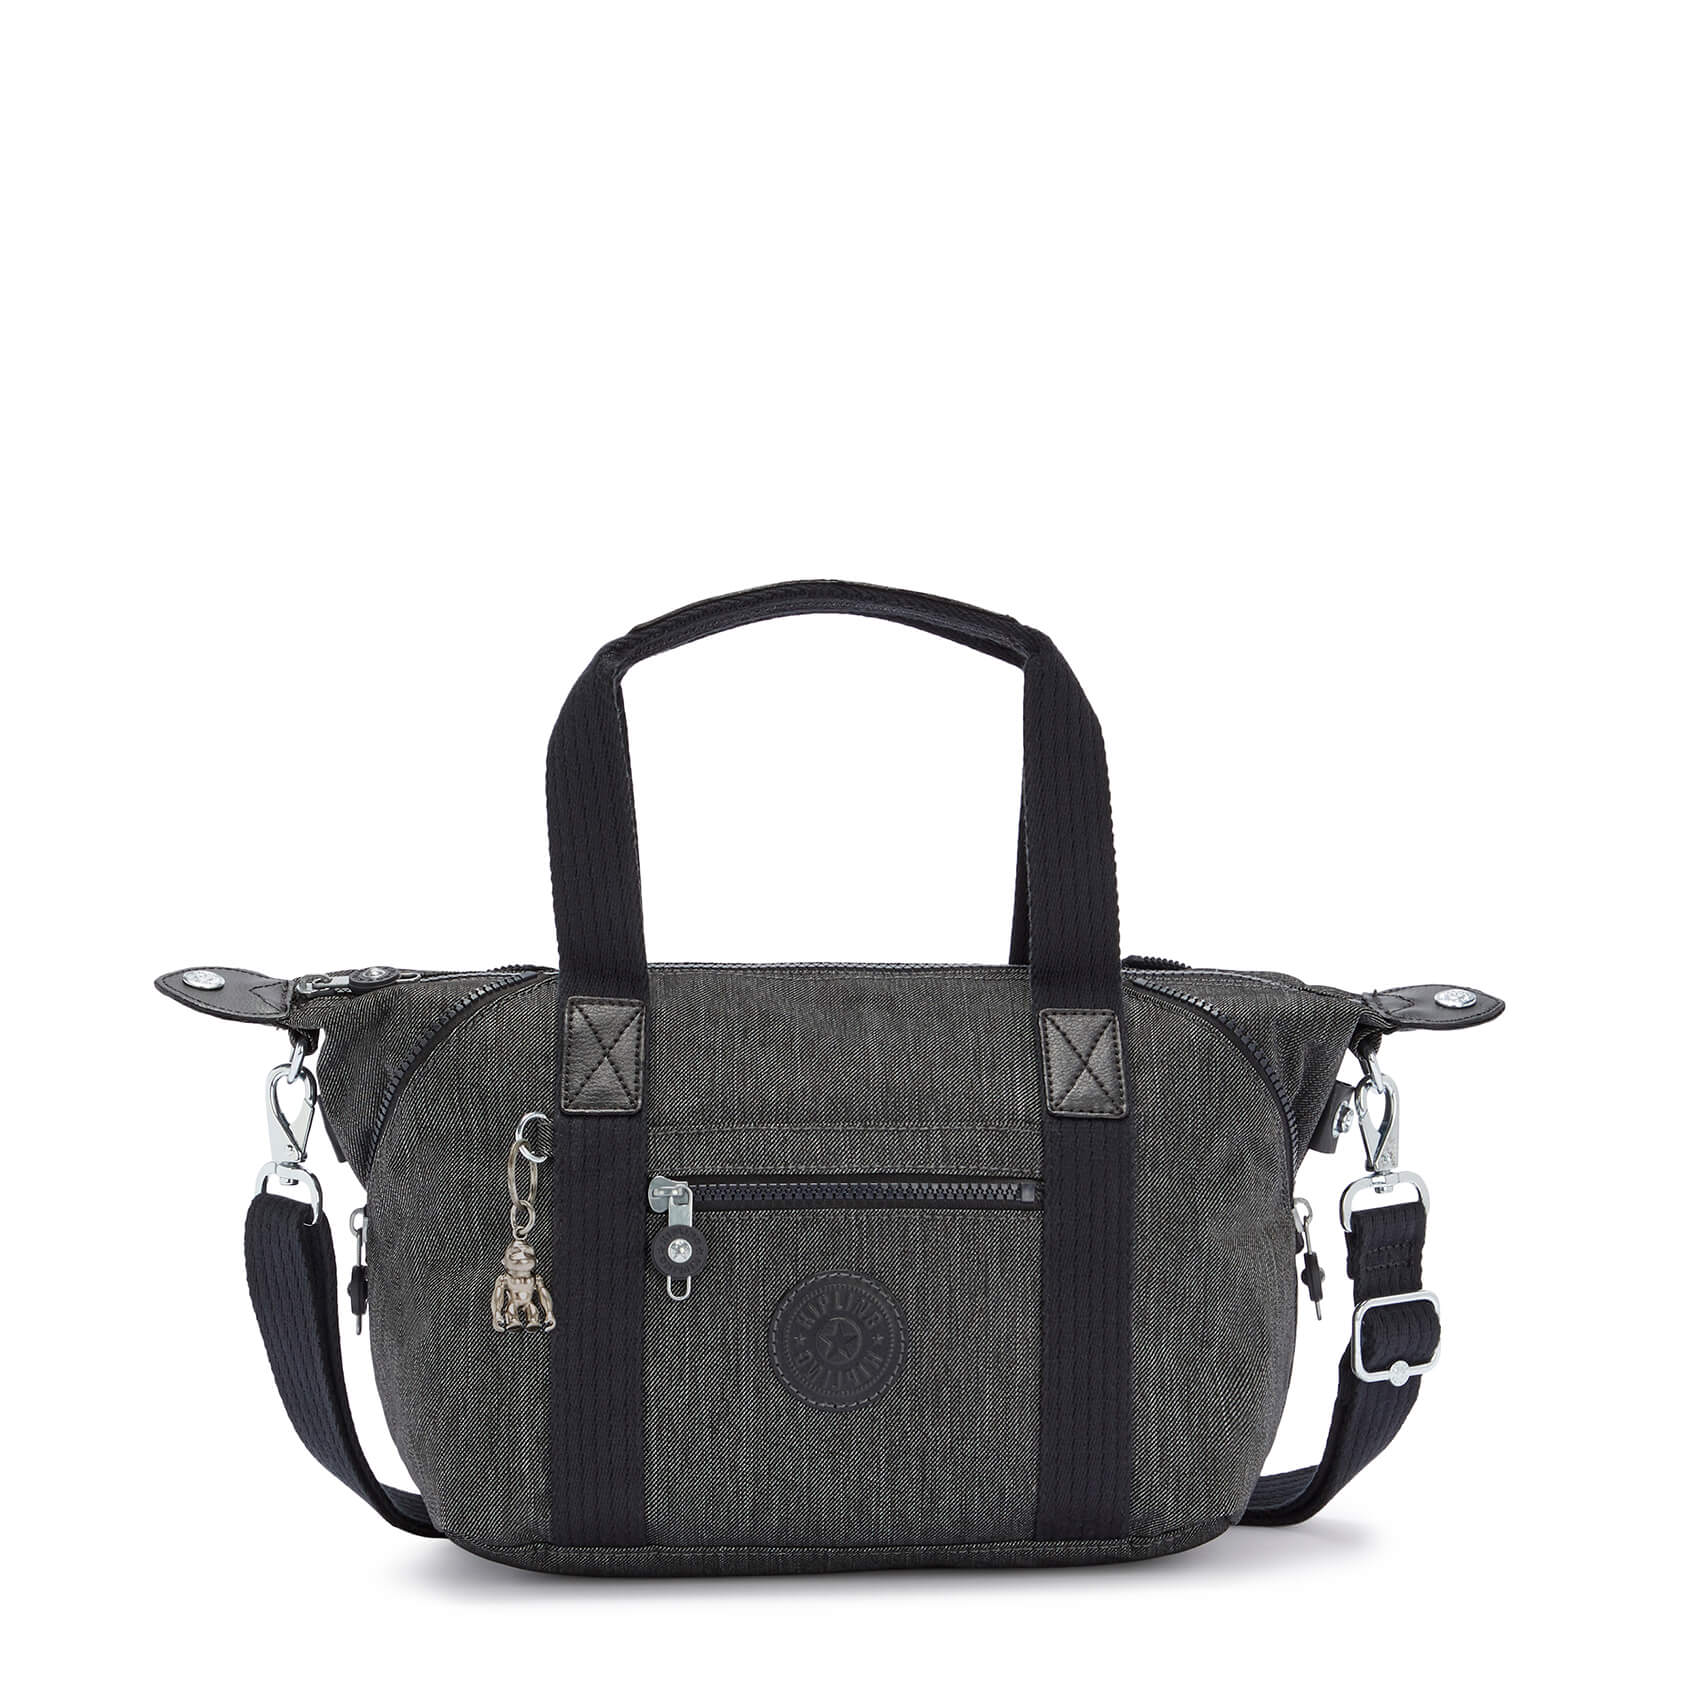 Bolsa Kipling Art Mini Black Peppery KI474678S